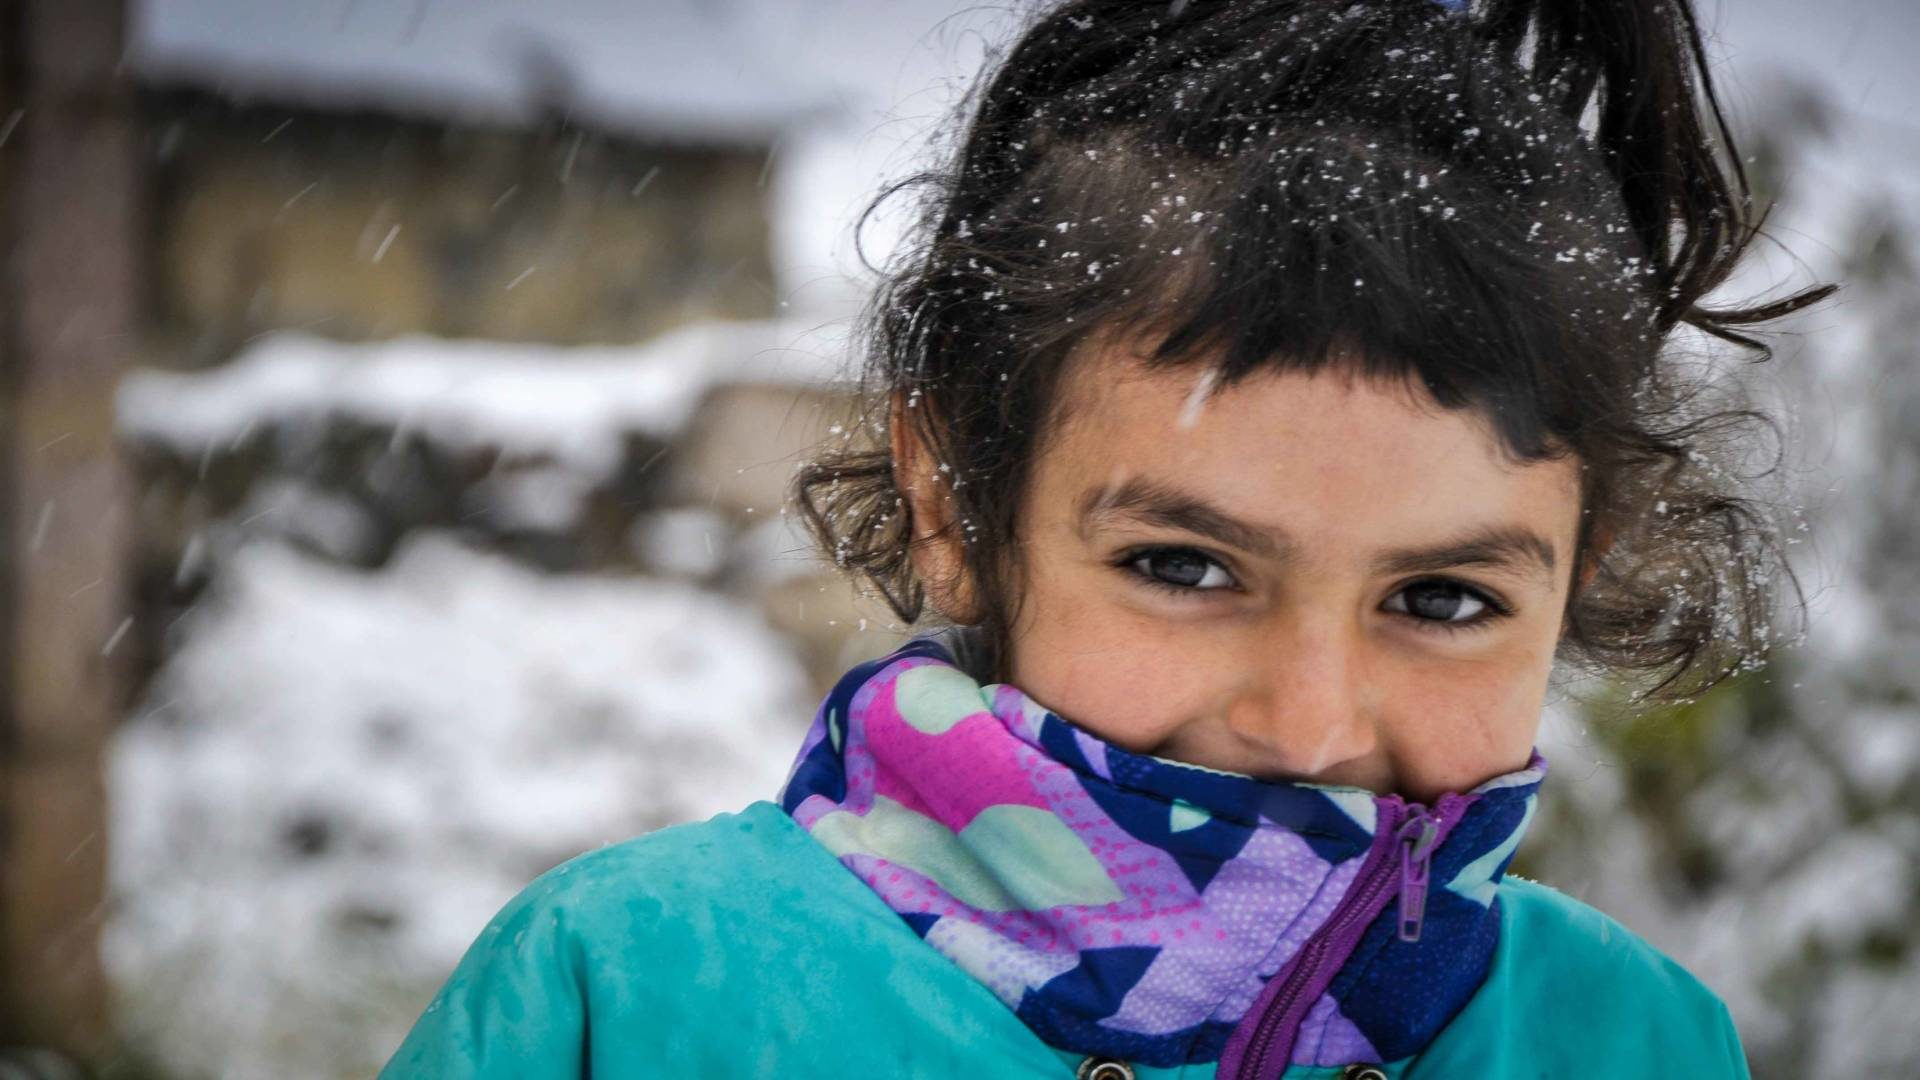 Nelly, 8, escaped fighting to Northern Armenia, and is grateful for the clothes, shoes, and toys World Vision provided.